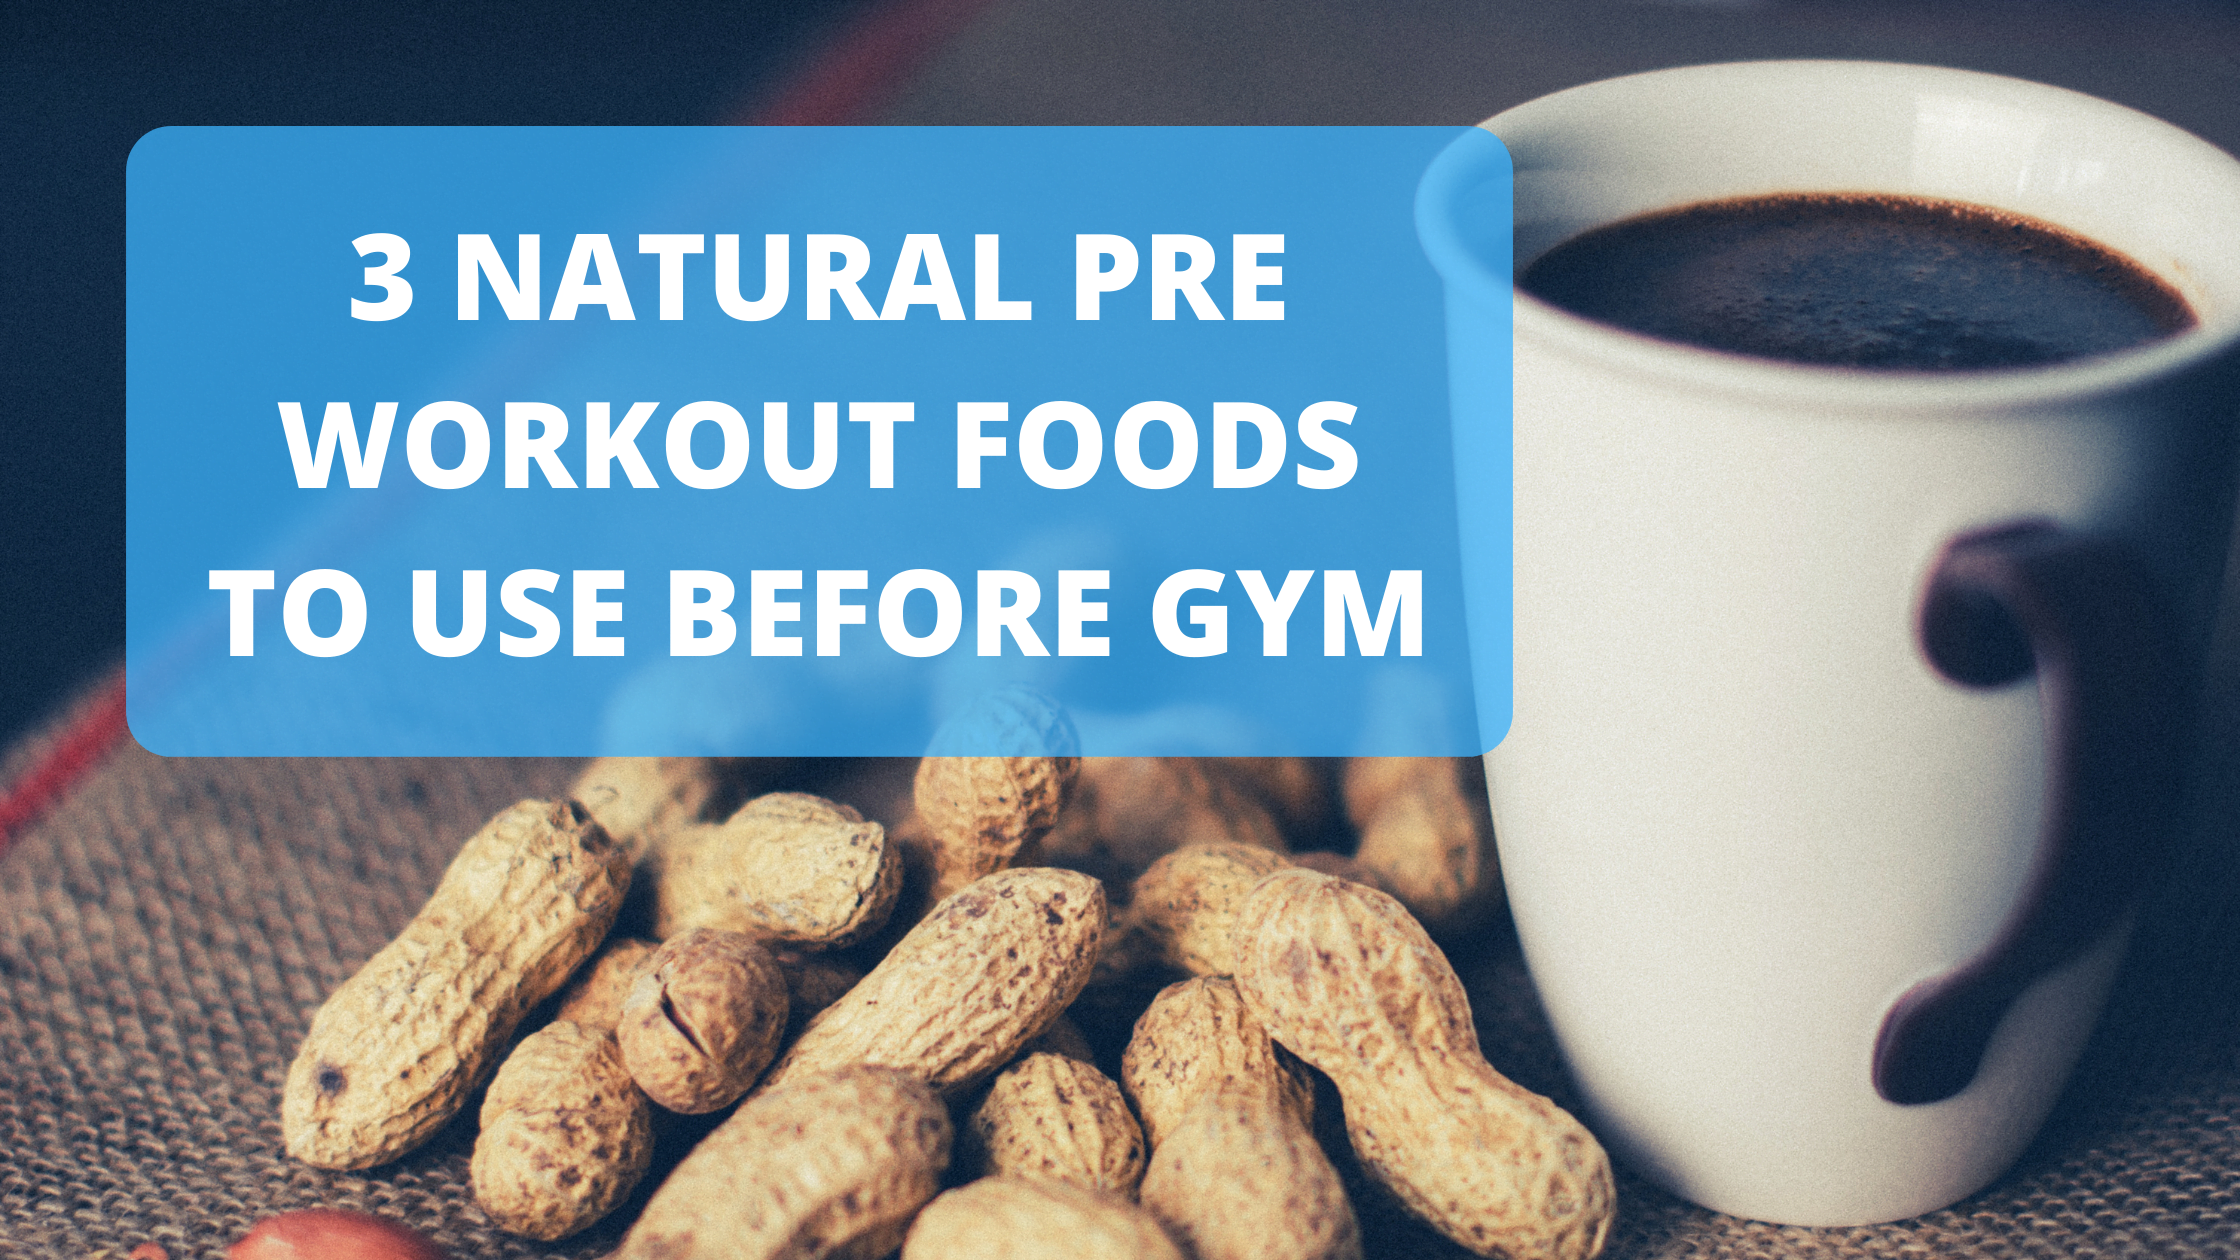 3 Natural Pre Workout Foods to Eat Before Gym